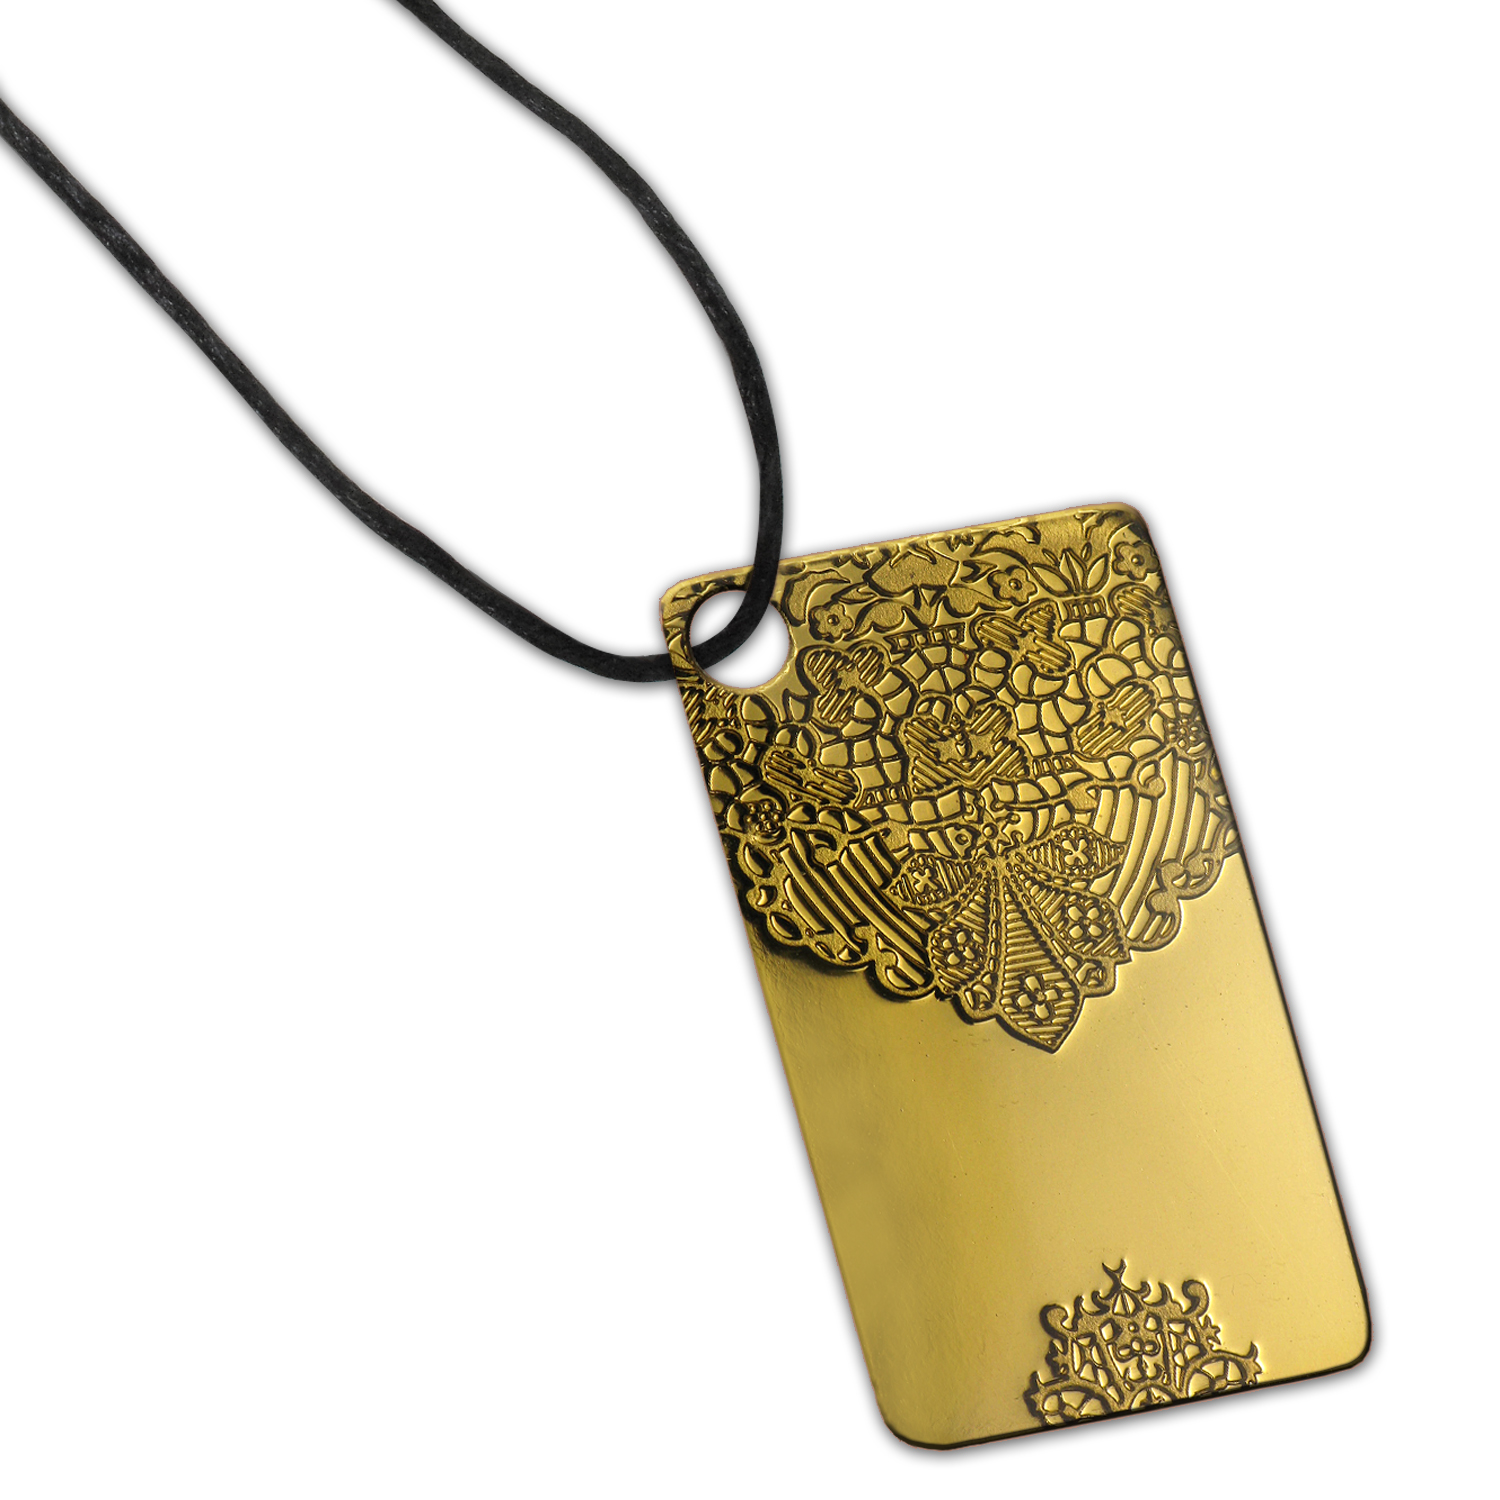 5 gram Gold Pendants - Pamp Suisse Ingot (Chantilly Lace)